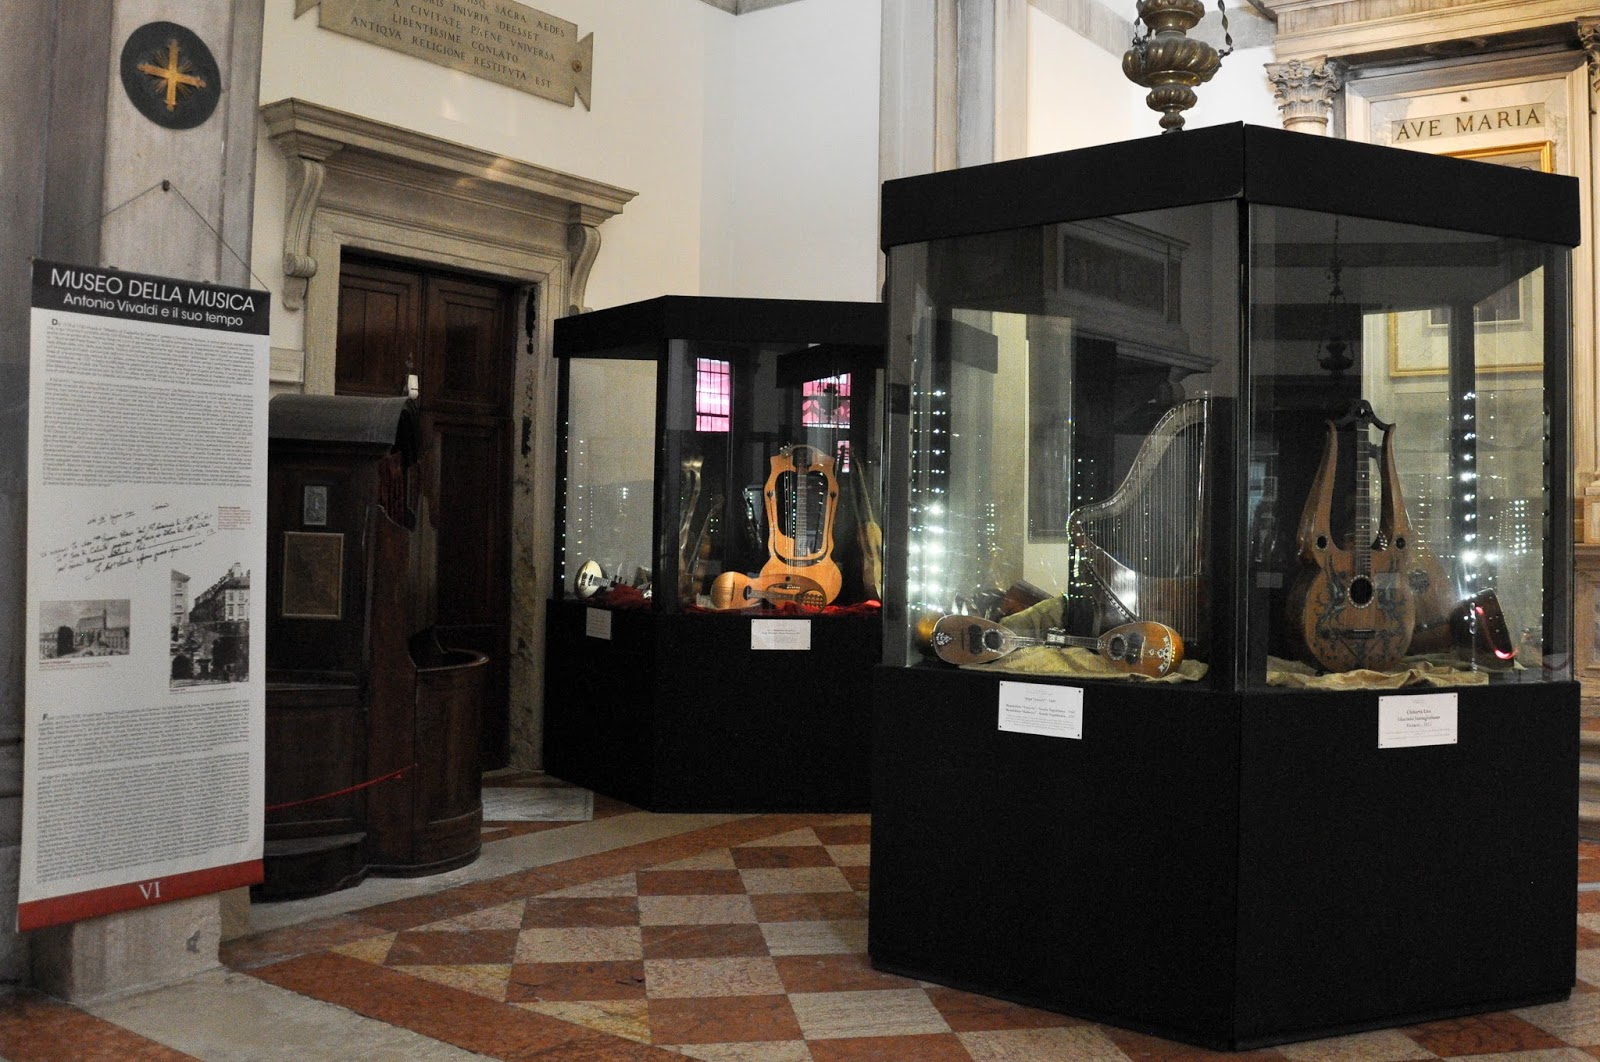 Exhibit cases, Museum of the Music, Venice, Italy